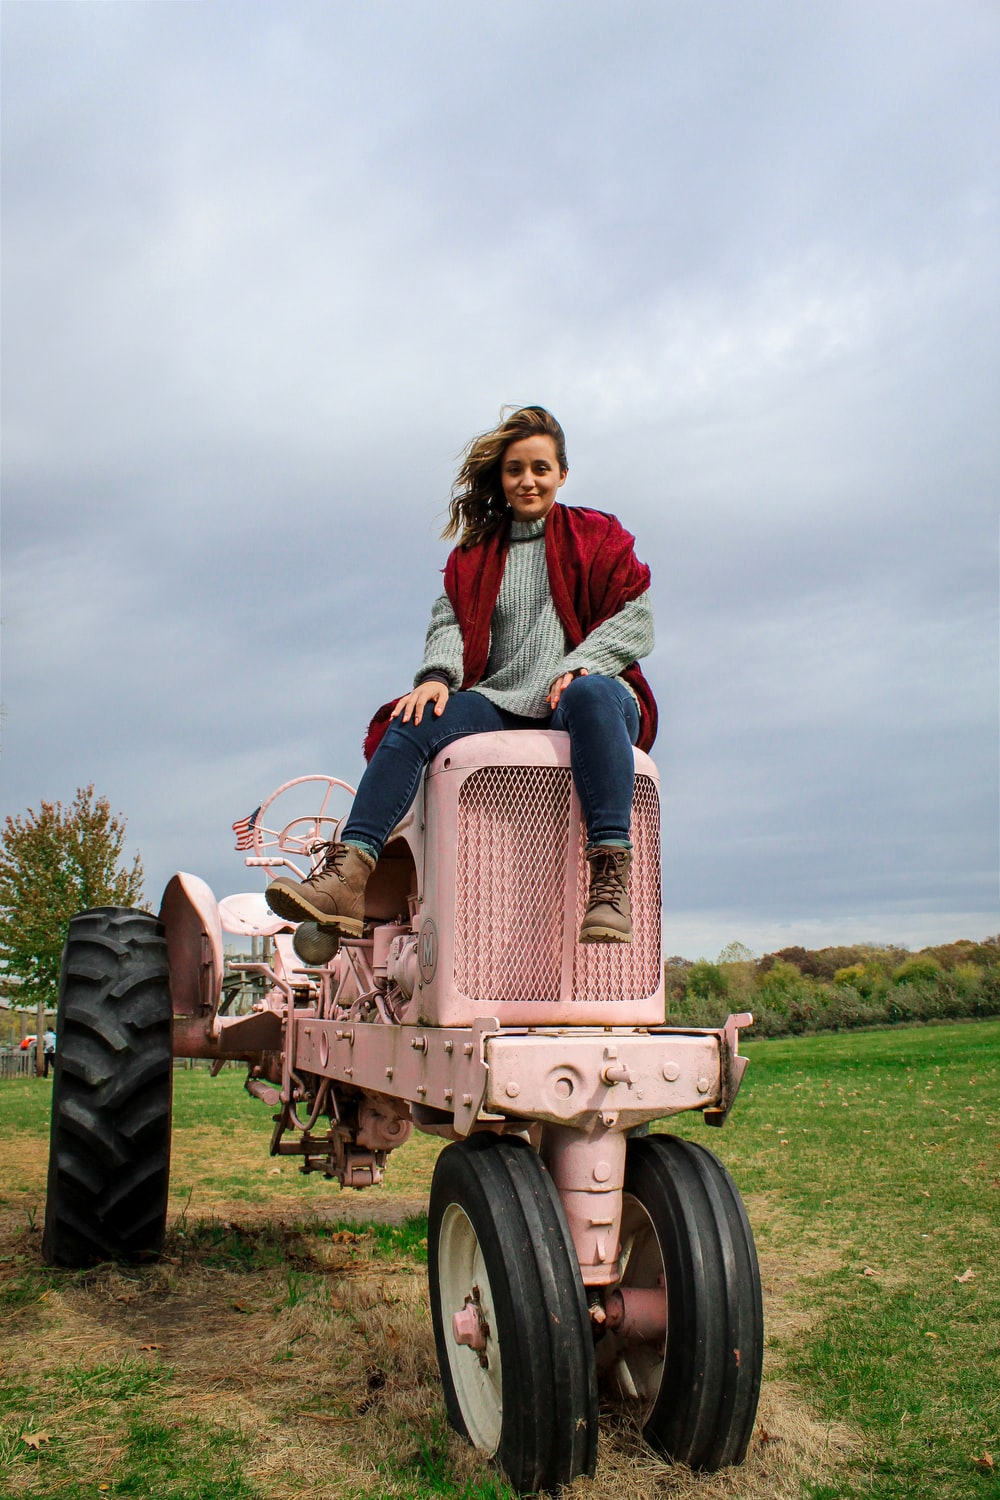 woman in red long sleeve shirt riding red tractor on green grass field during daytime